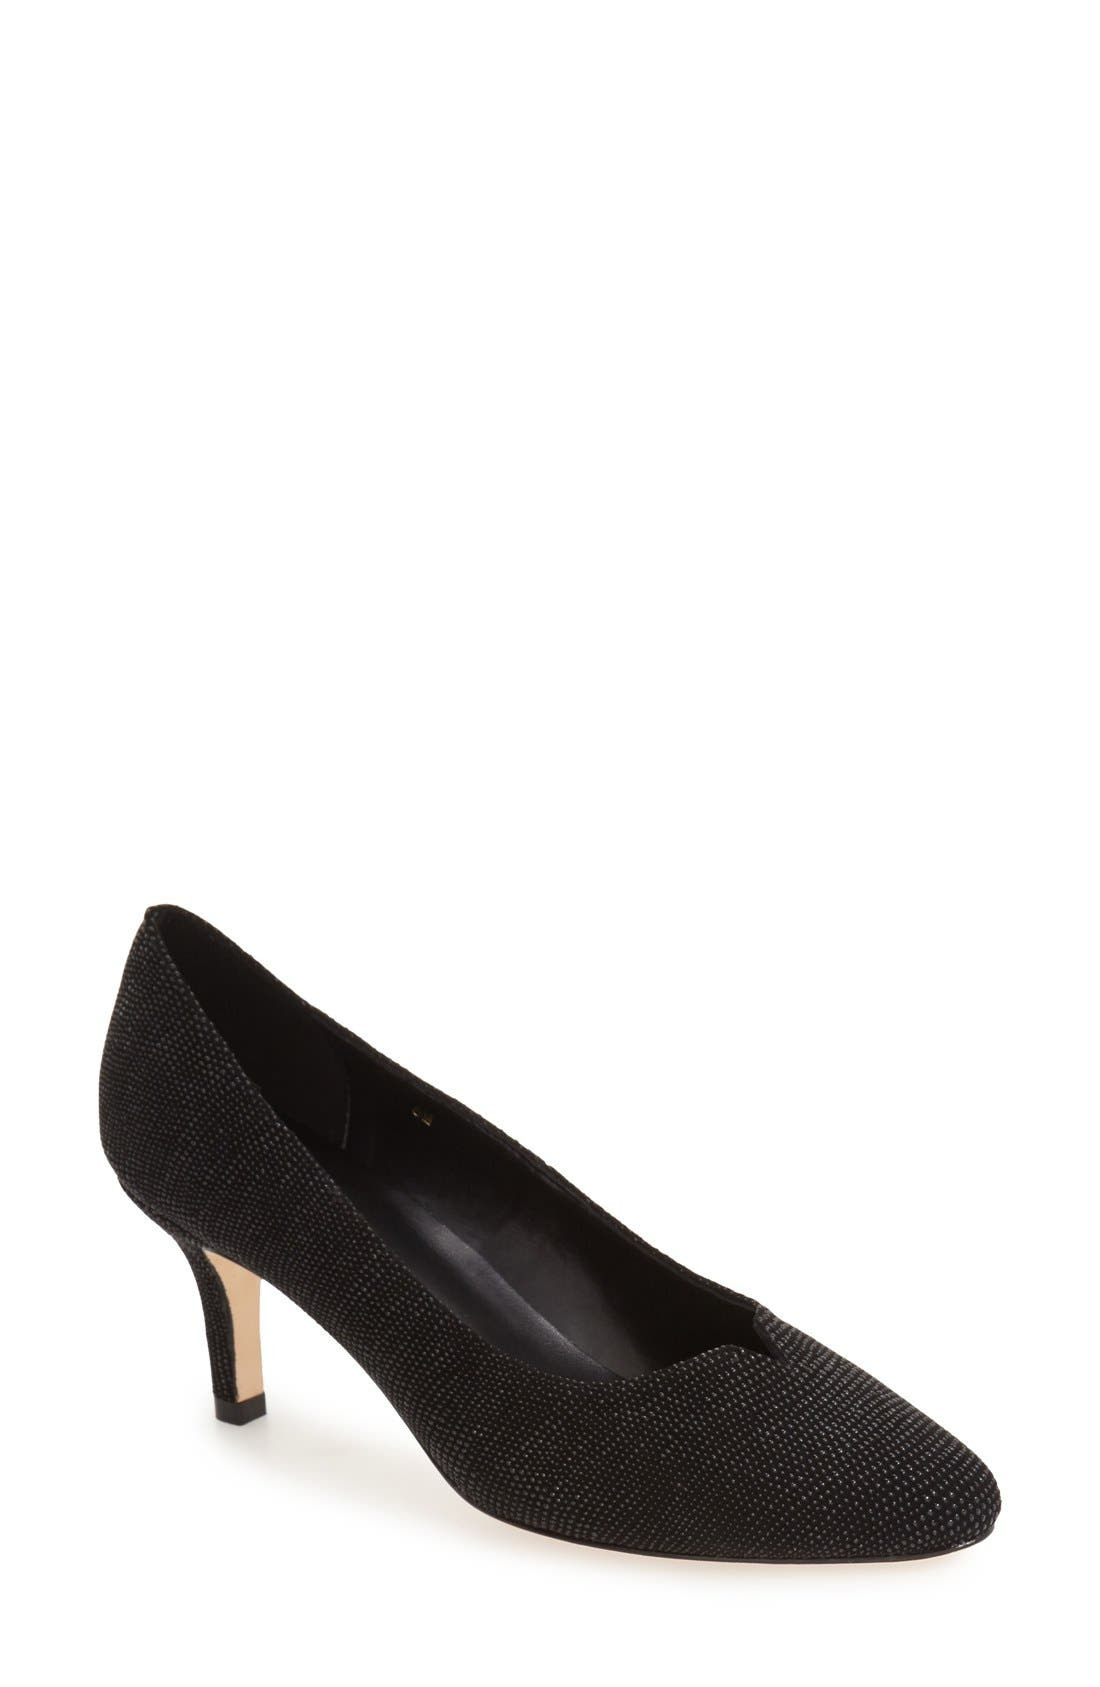 'Linden' Almond Toe Pump,                             Main thumbnail 1, color,                             001